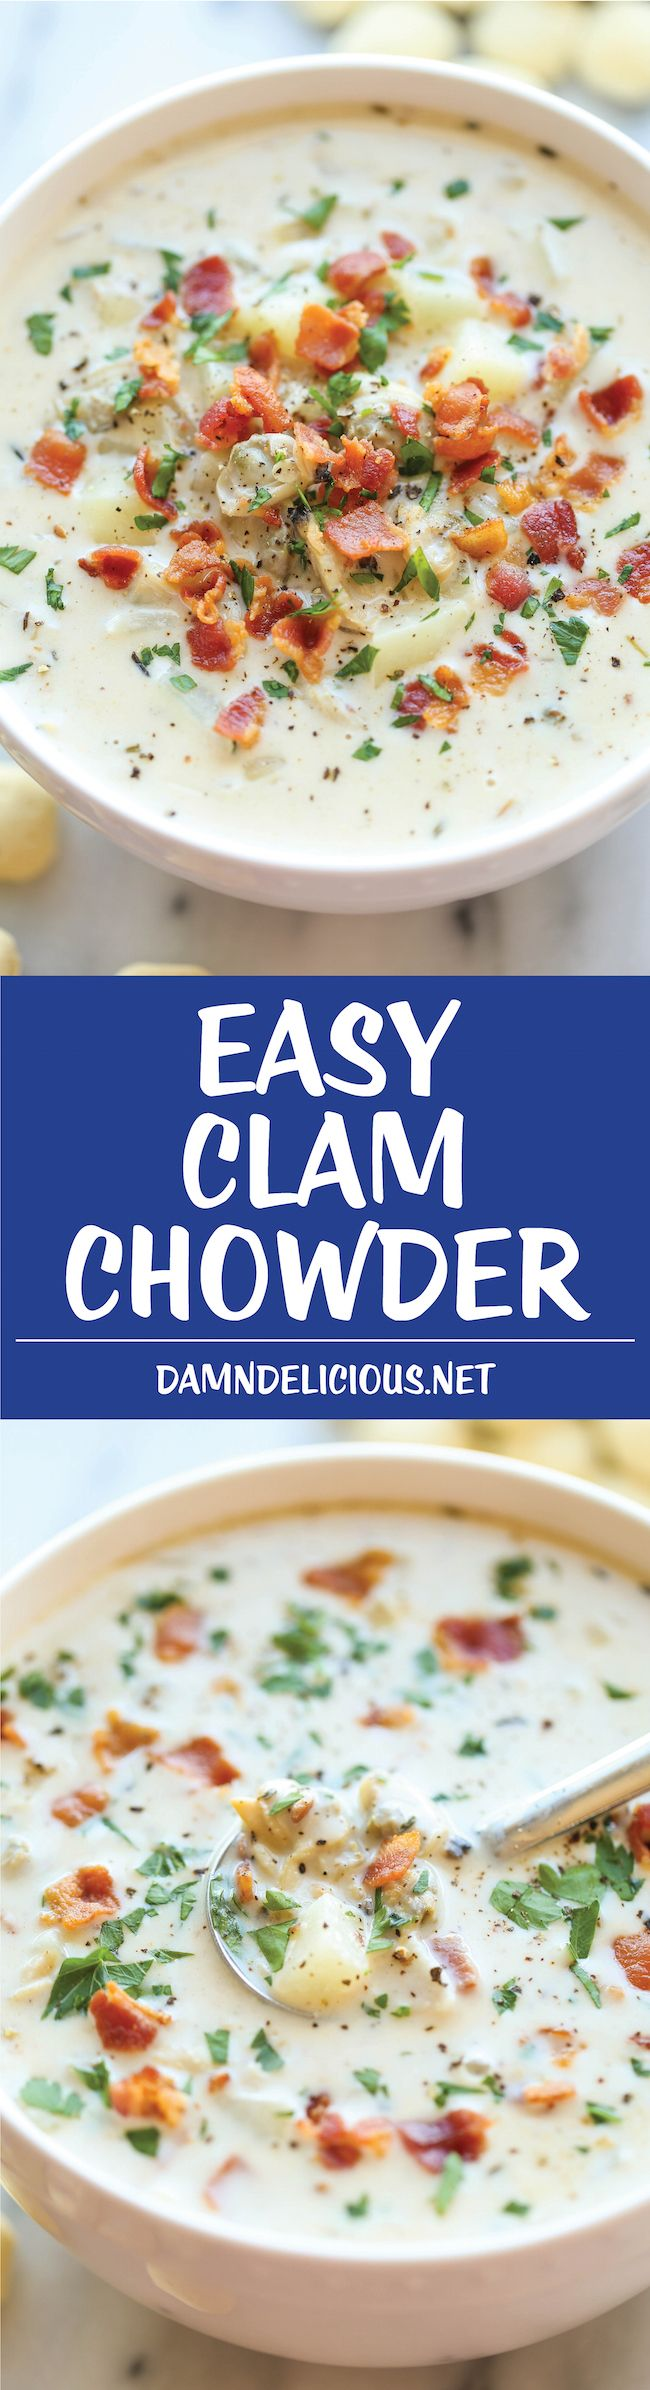 Easy Clam Chowder - Very delicious. My whole family really enjoyed eating this chowder. Next time add only about 3/4 of the juice from the clams. I like my chowder to be little thicker.